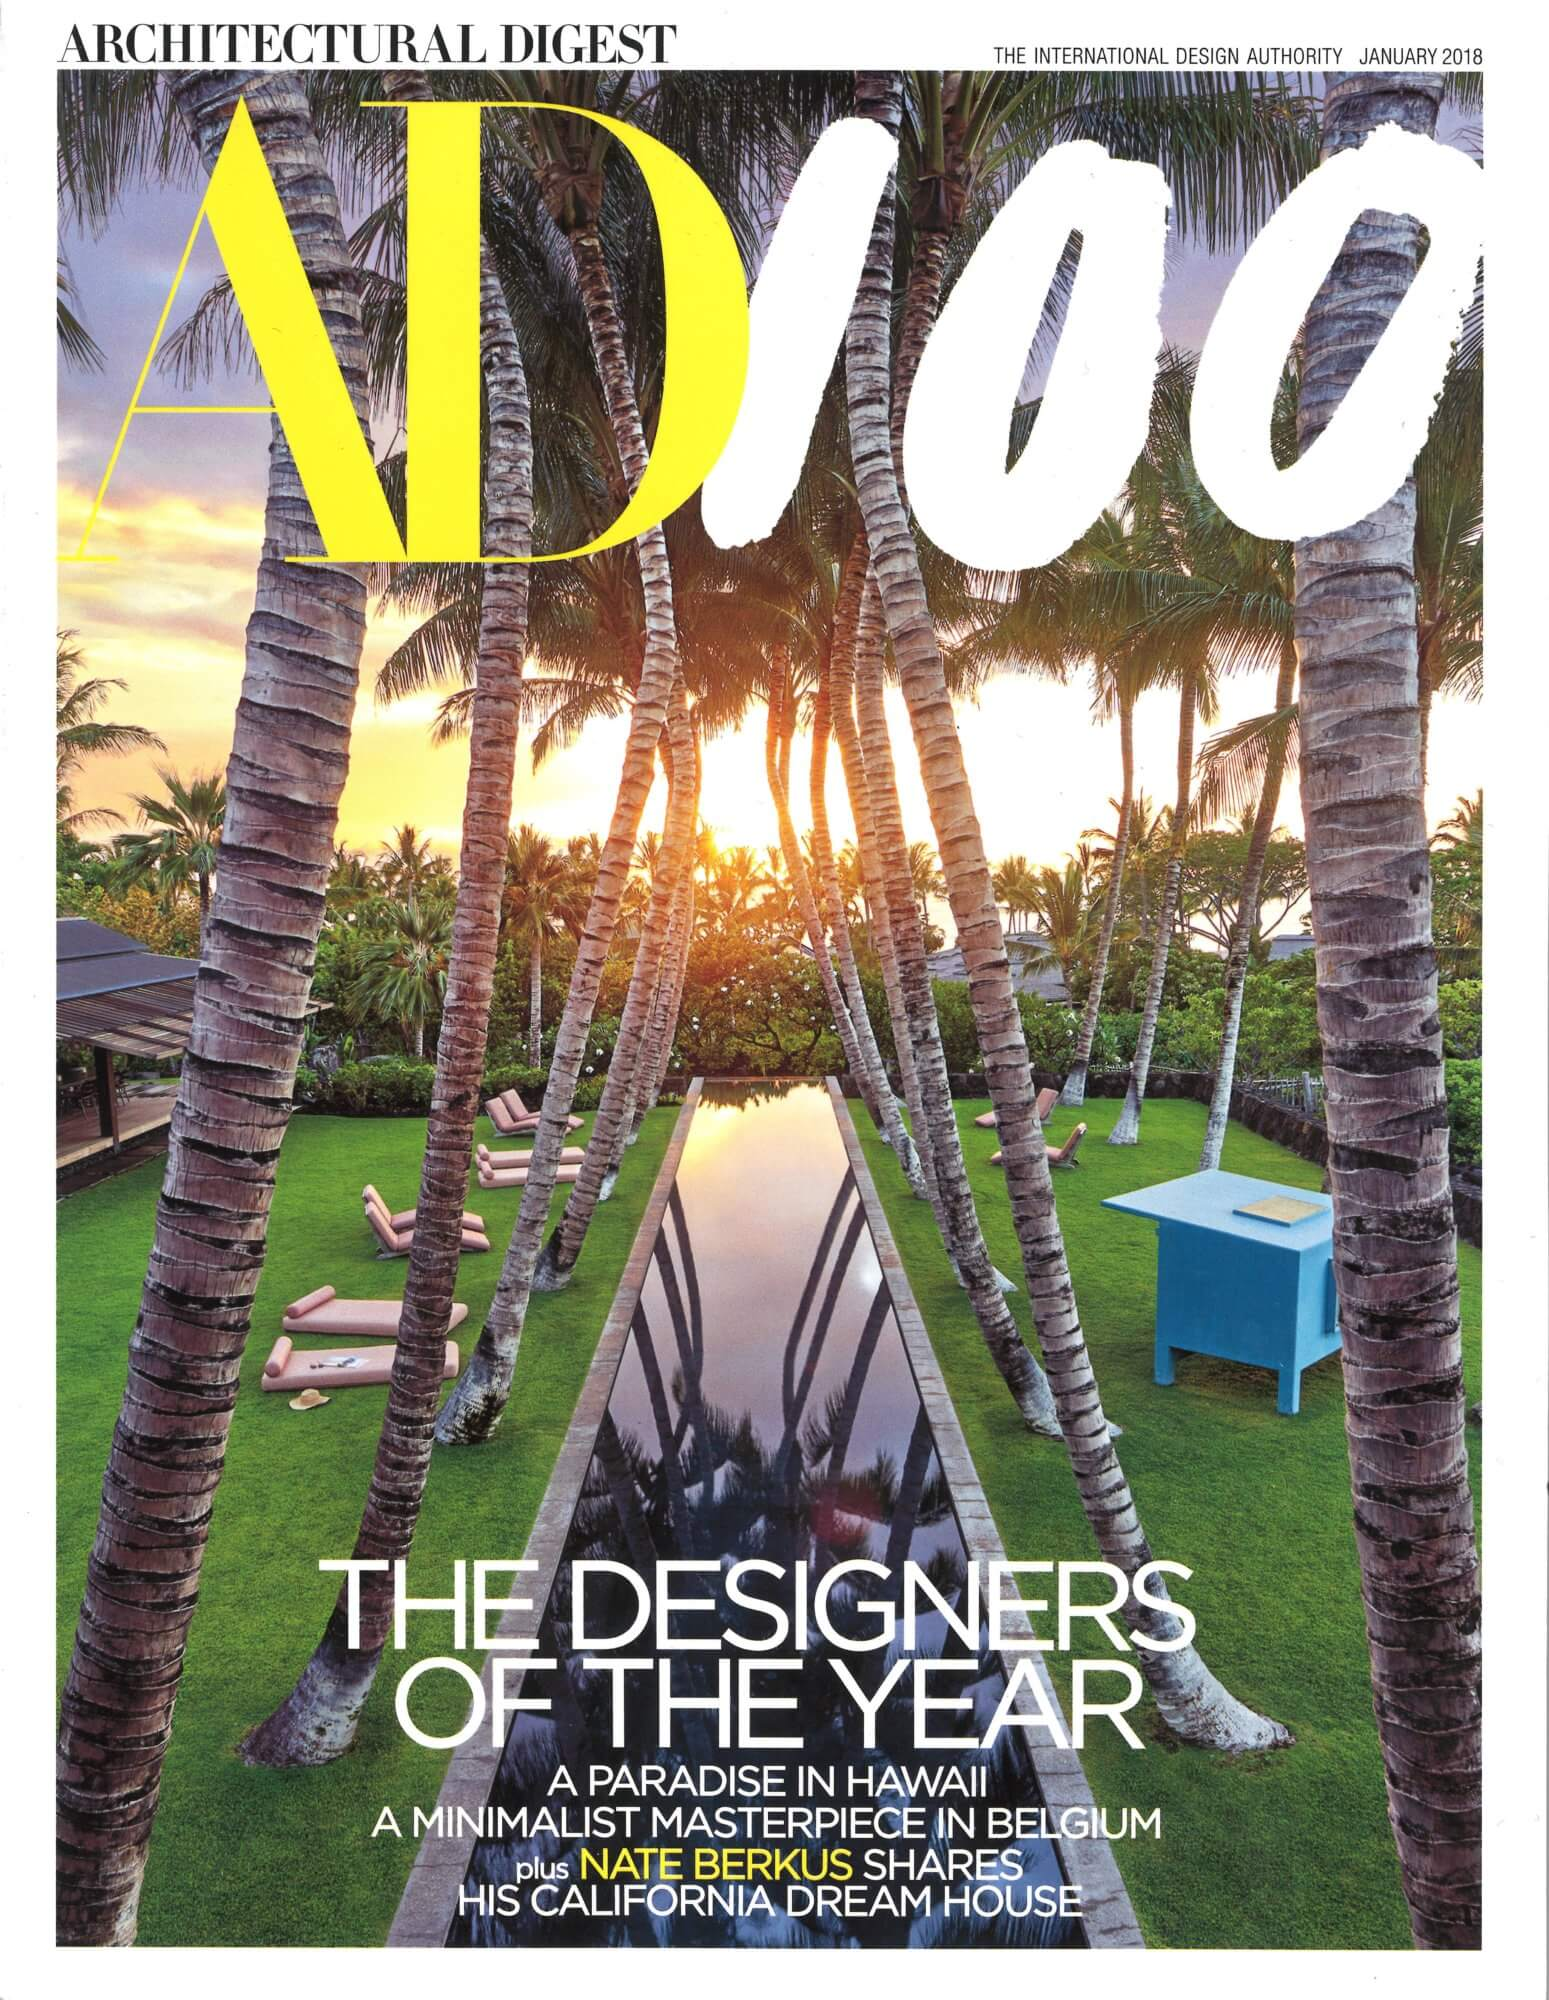 The designers of the year - India Mahdavi